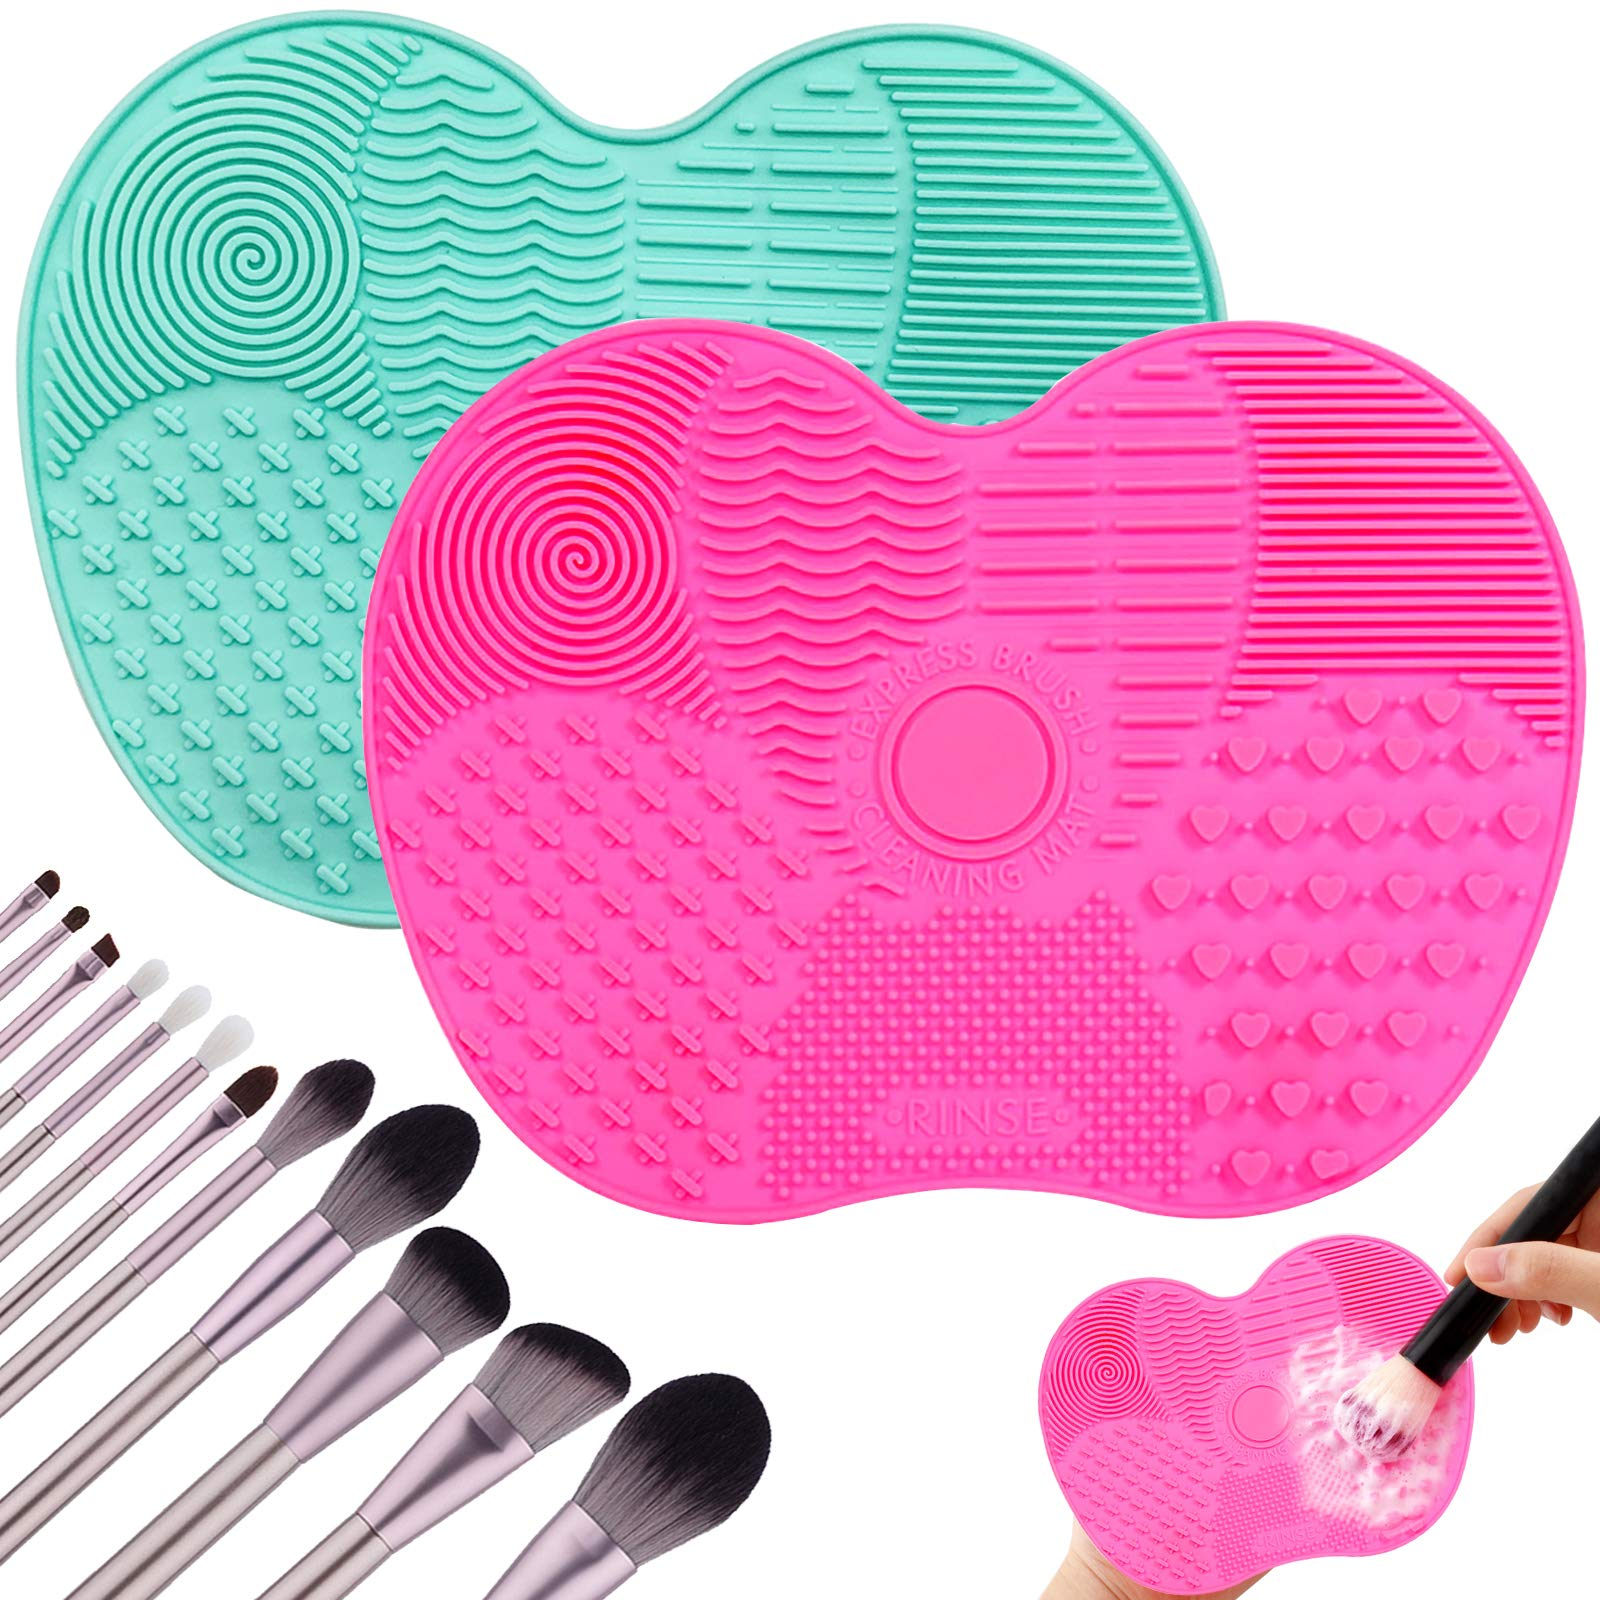 Silicone Makeup Brush Cleaner Cosmetic Foundation Makeup Brush Scrubber Board Gel Cleaning Mat Hand Tool Dropshipping